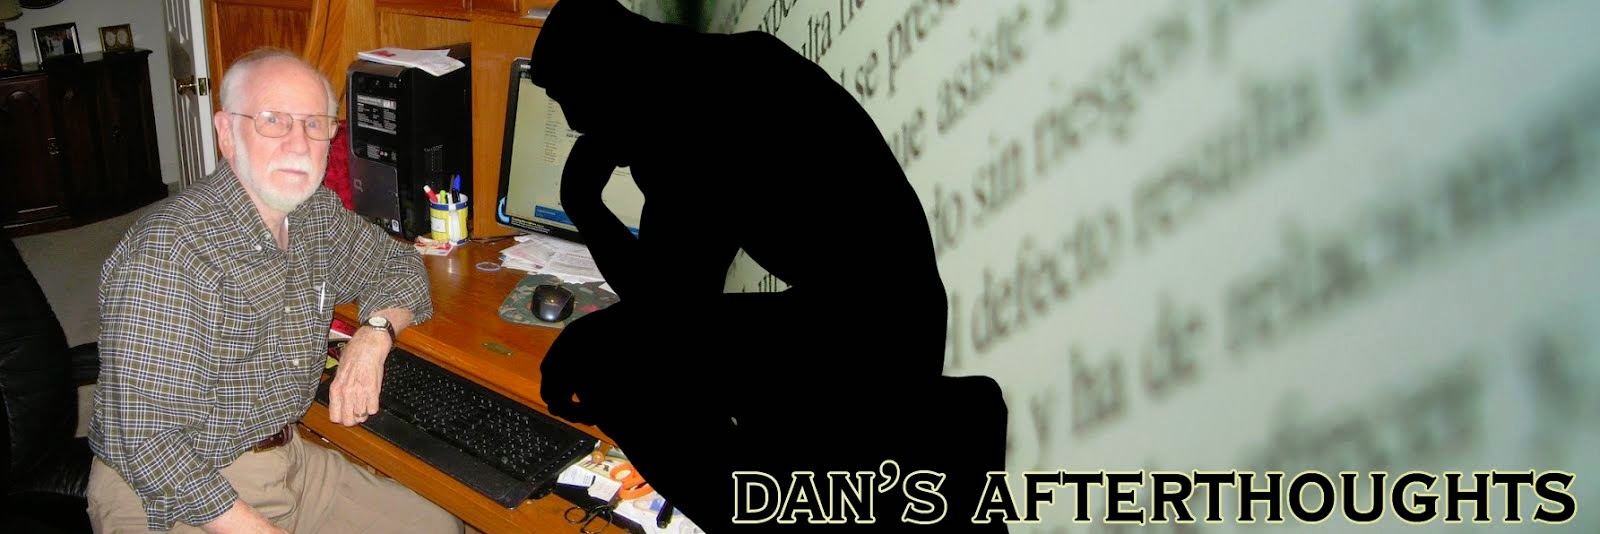 Dan's Afterthoughts